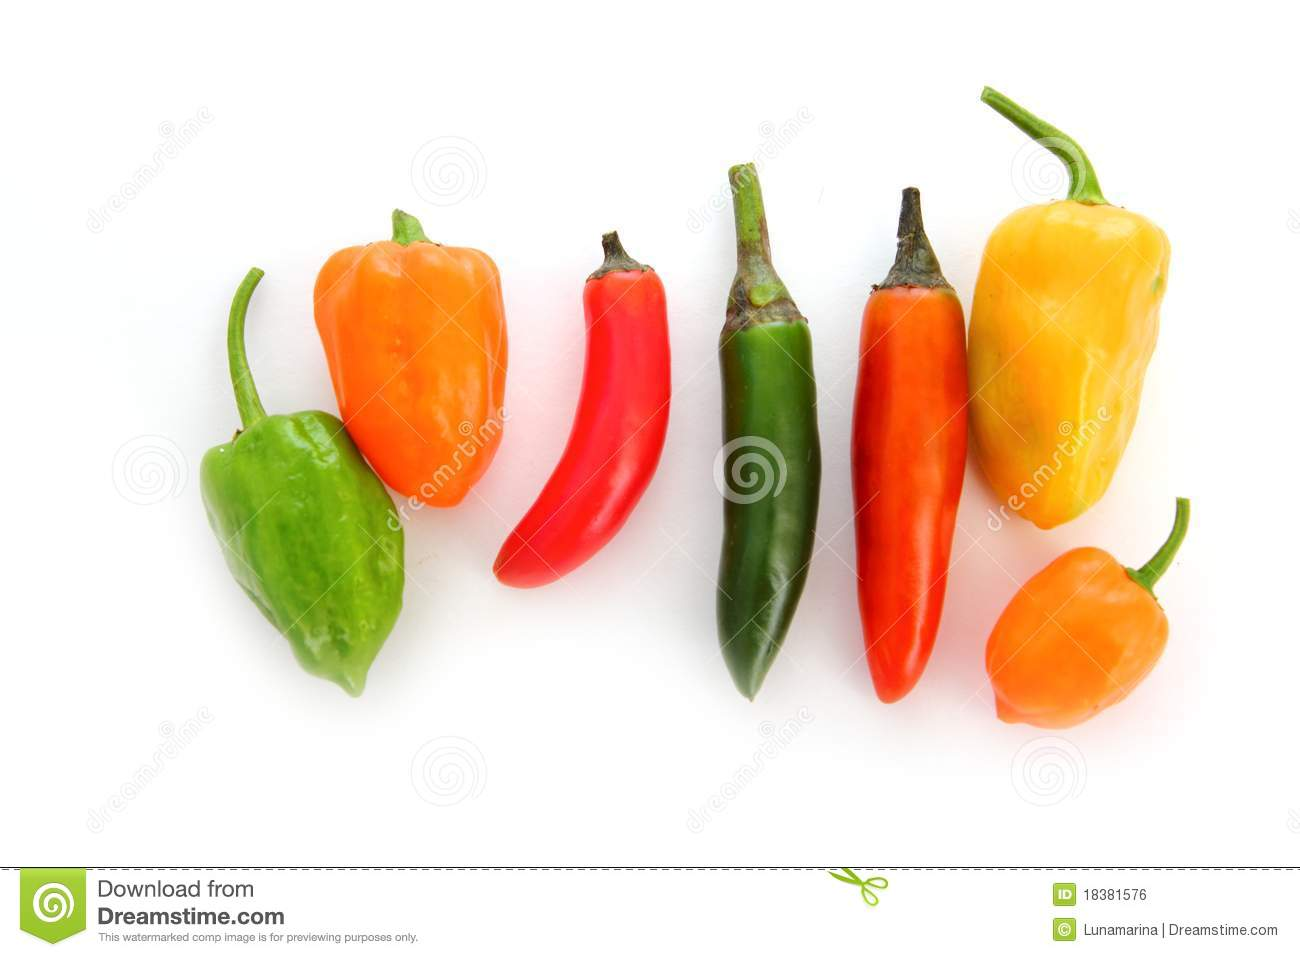 Chili Habanero Serrano Hot Mexican Peppers Royalty Free Stock Image ...